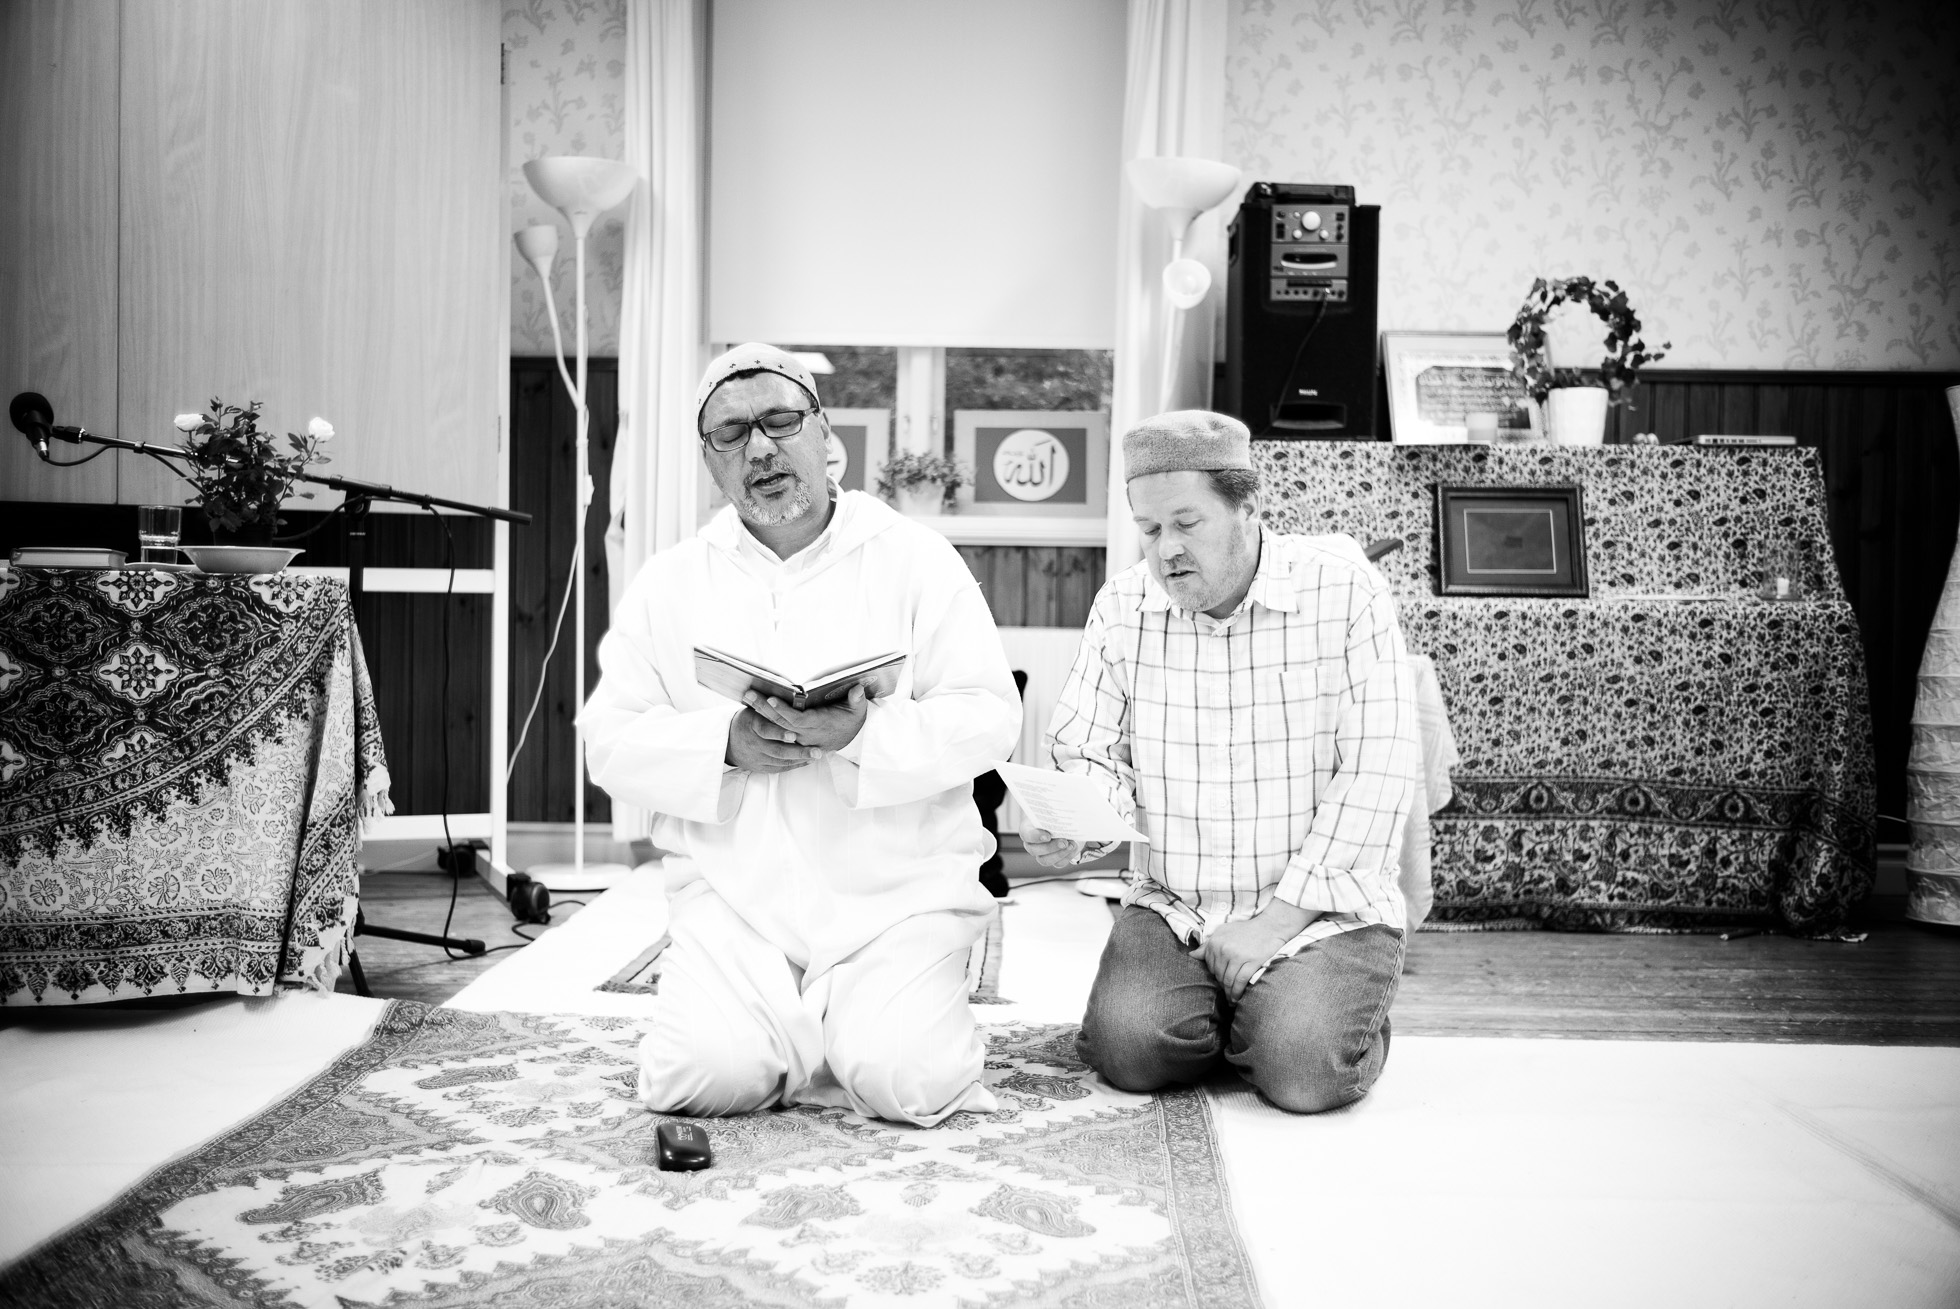 2016-08-26--Sufi-retreat-WLMS9__2016-08-26__0006-Redigera